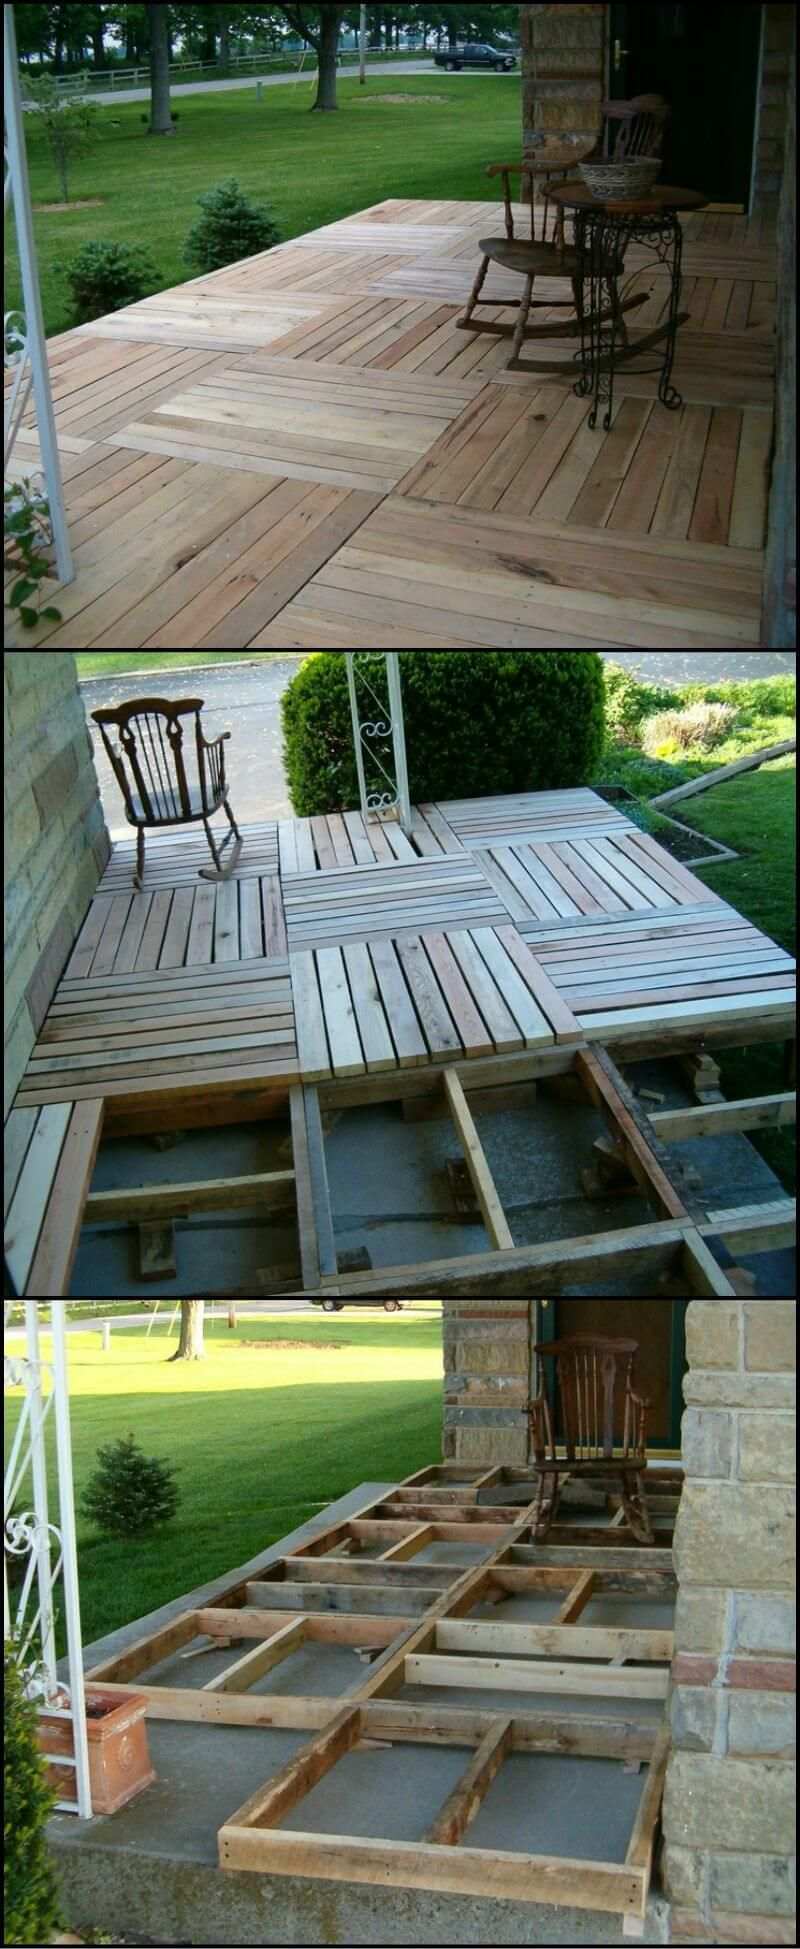 outdoor deck furniture ideas pallet home front porch wood pallet deck project 25 awesome oneday backyard ideas to spruce up your outdoor